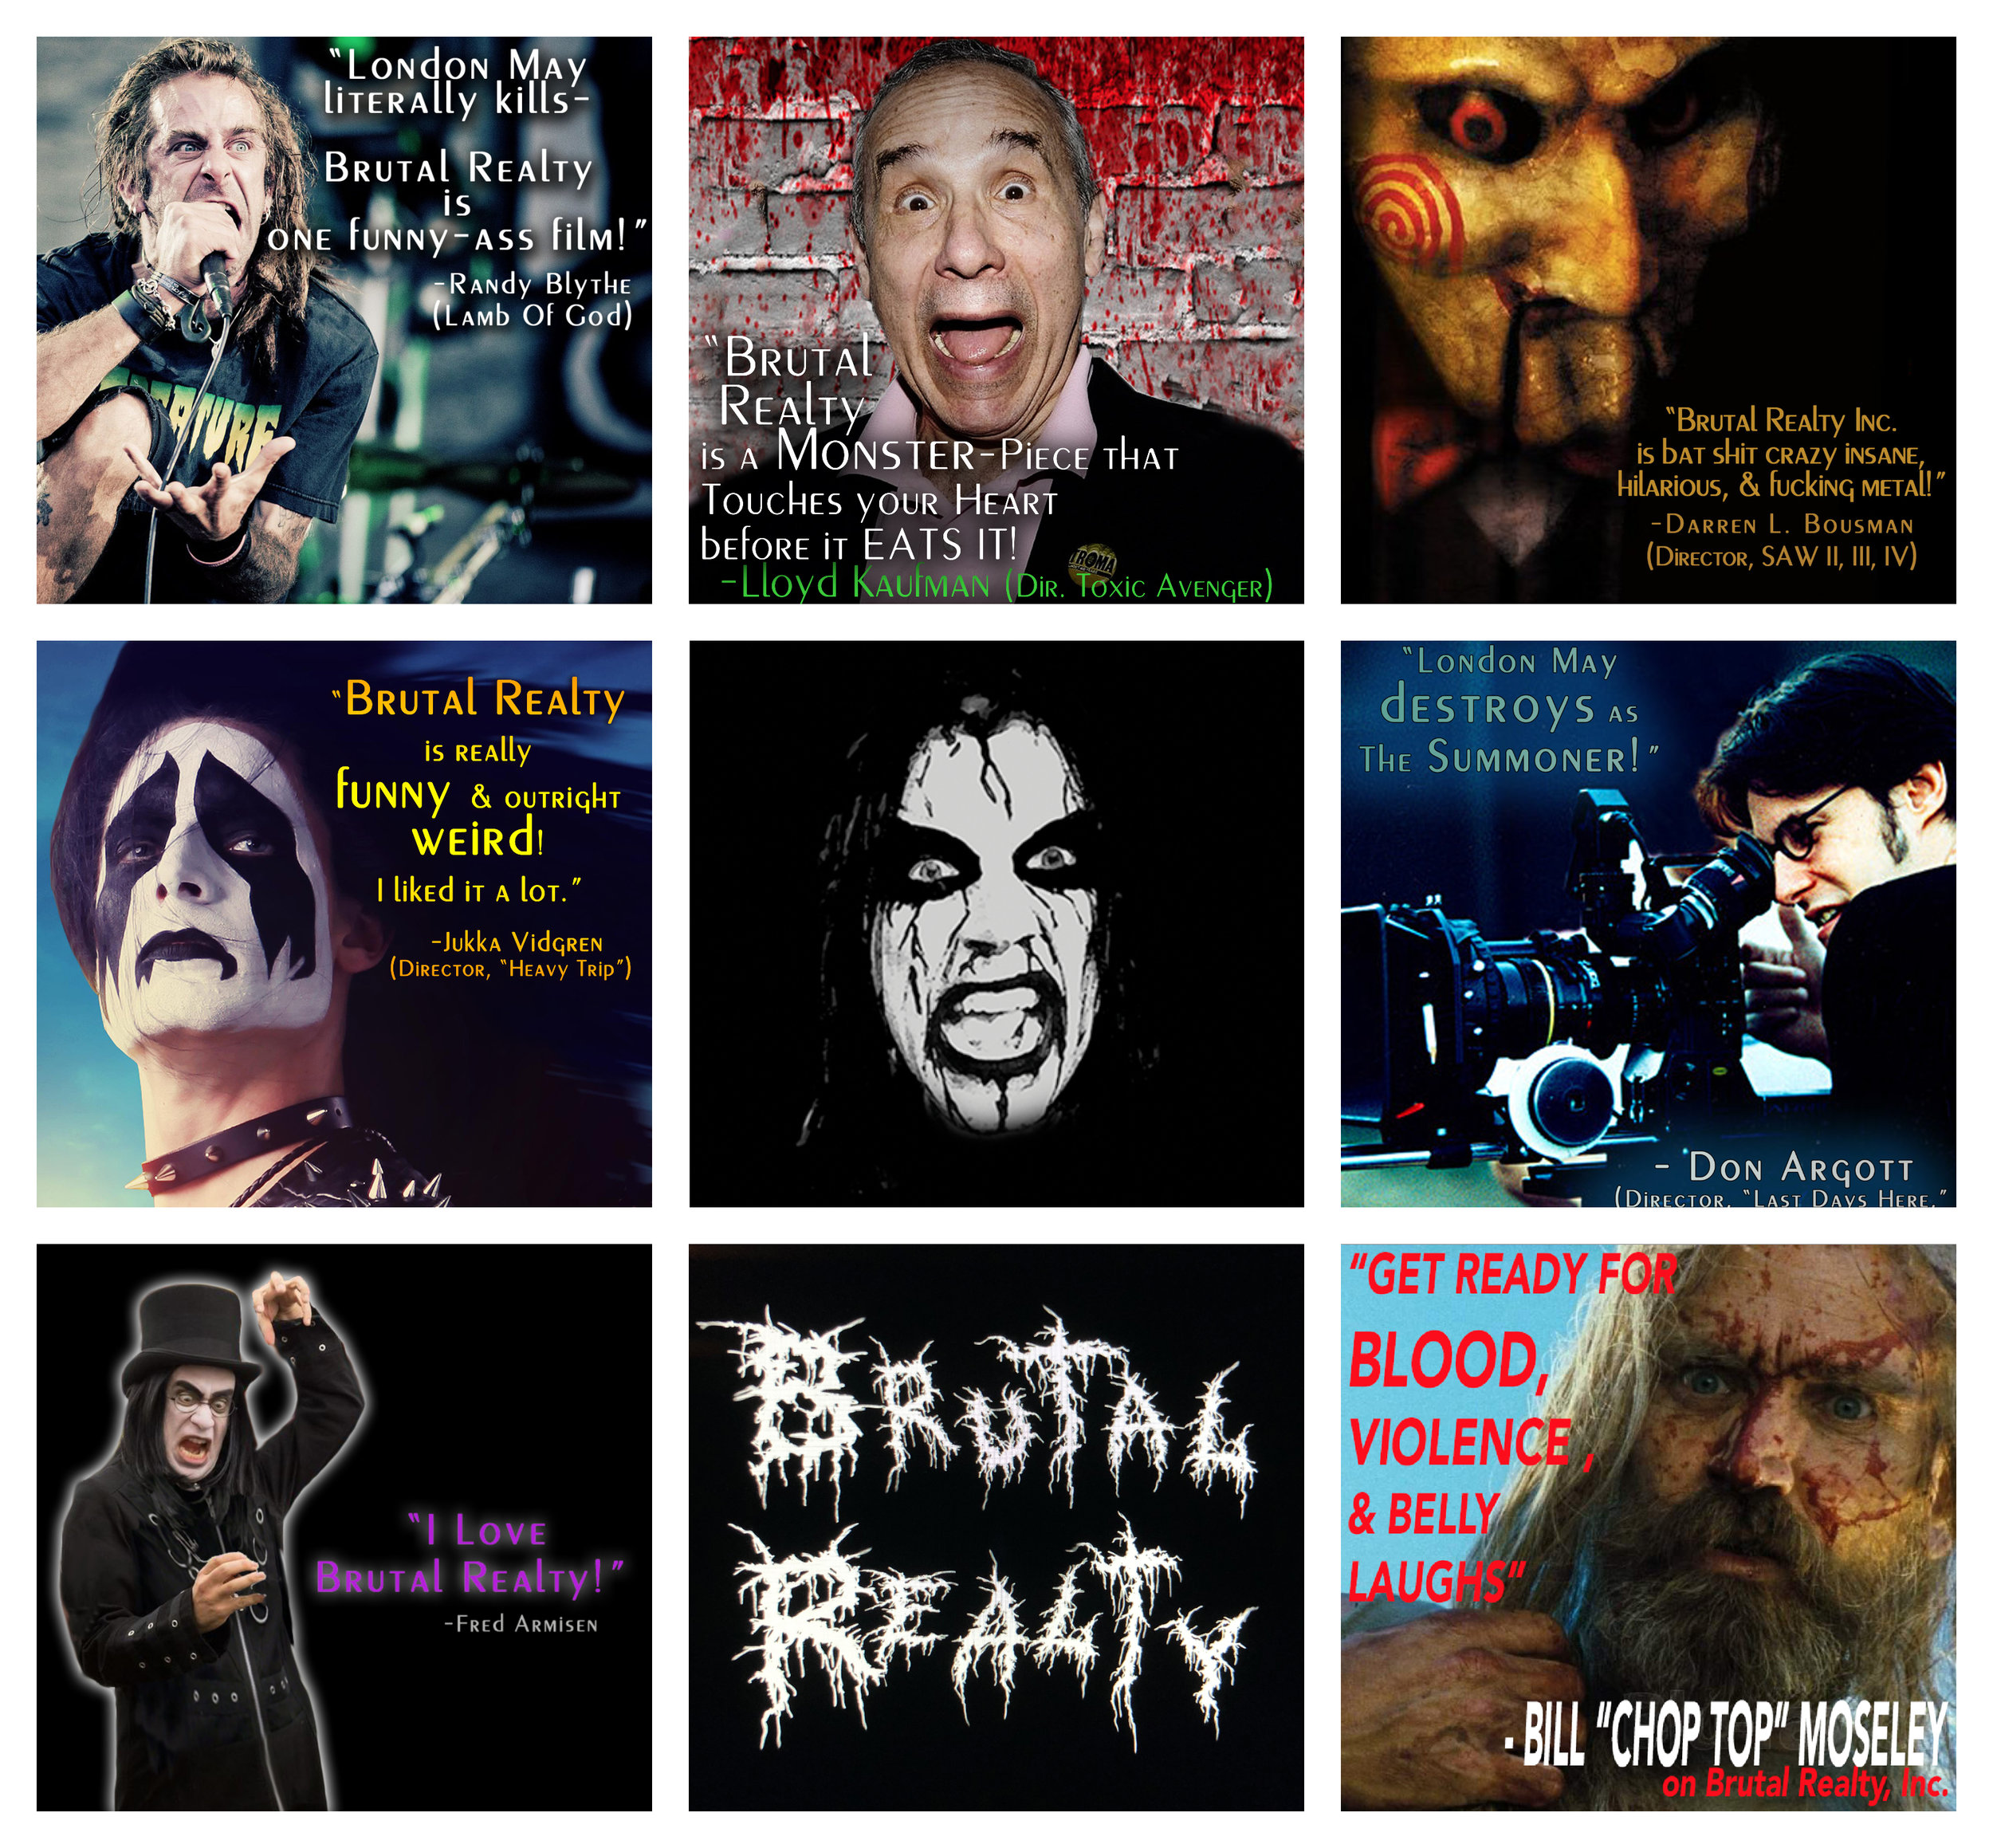 """BRUTAL REALTY INC.  RECEIVES """"2 HORNS UP"""" FROM THESE LEGENDS OF METAL, COMEDY, AND HORROR! FANGS FOR THE WICKED ACCOLADES!"""